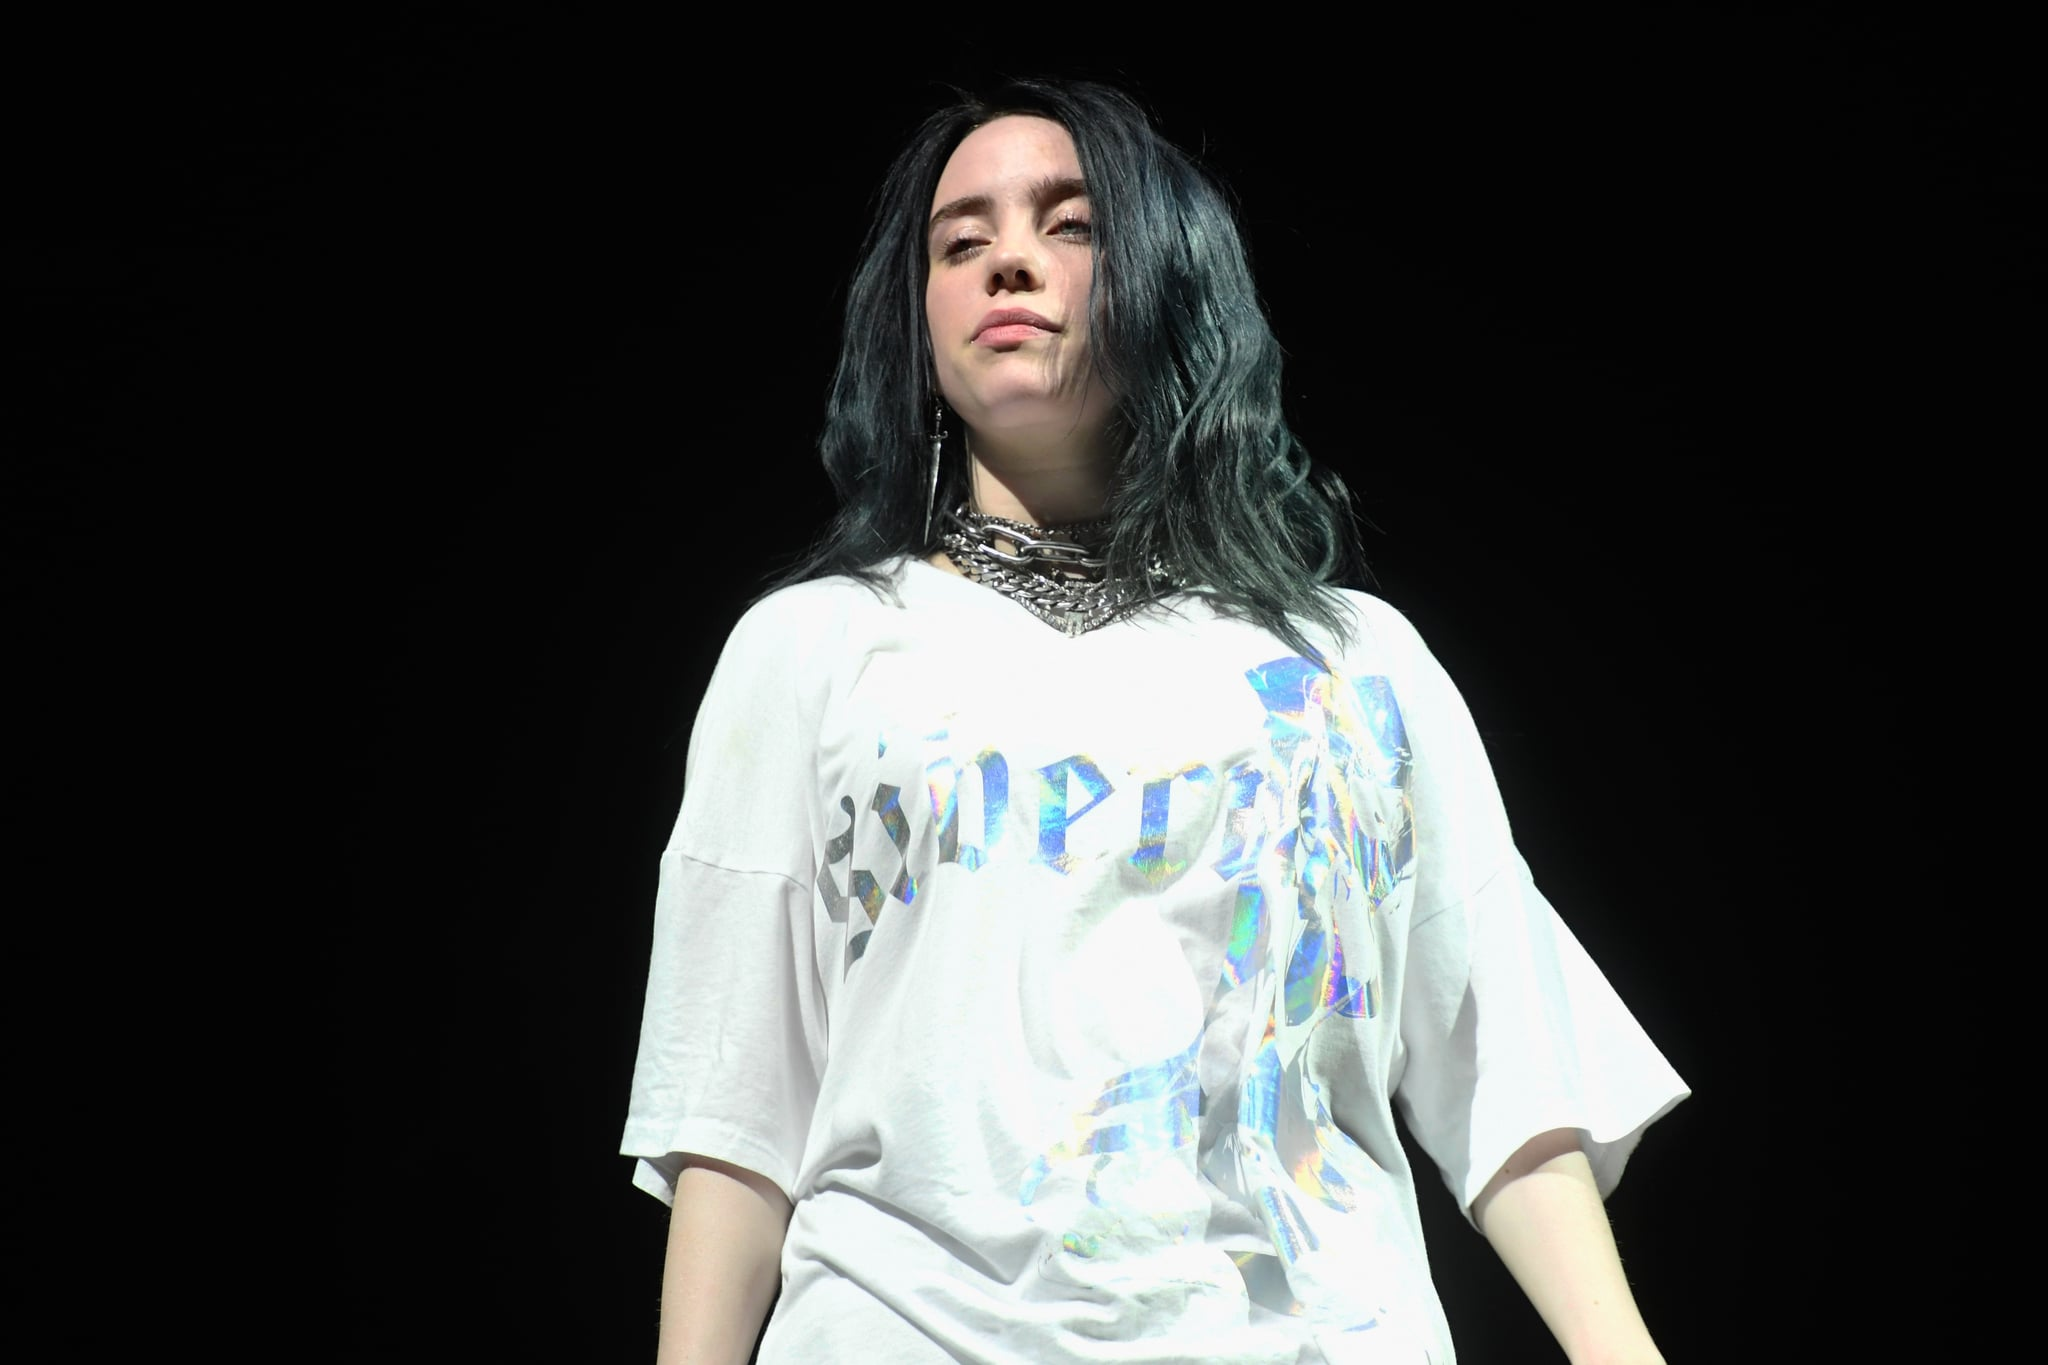 INDIO, CA - APRIL 13:  Billie Eilish performs at Outdoor Theatre during the 2019 Coachella Valley Music And Arts Festival on April 13, 2019 in Indio, California.  (Photo by Frazer Harrison/Getty Images for Coachella)